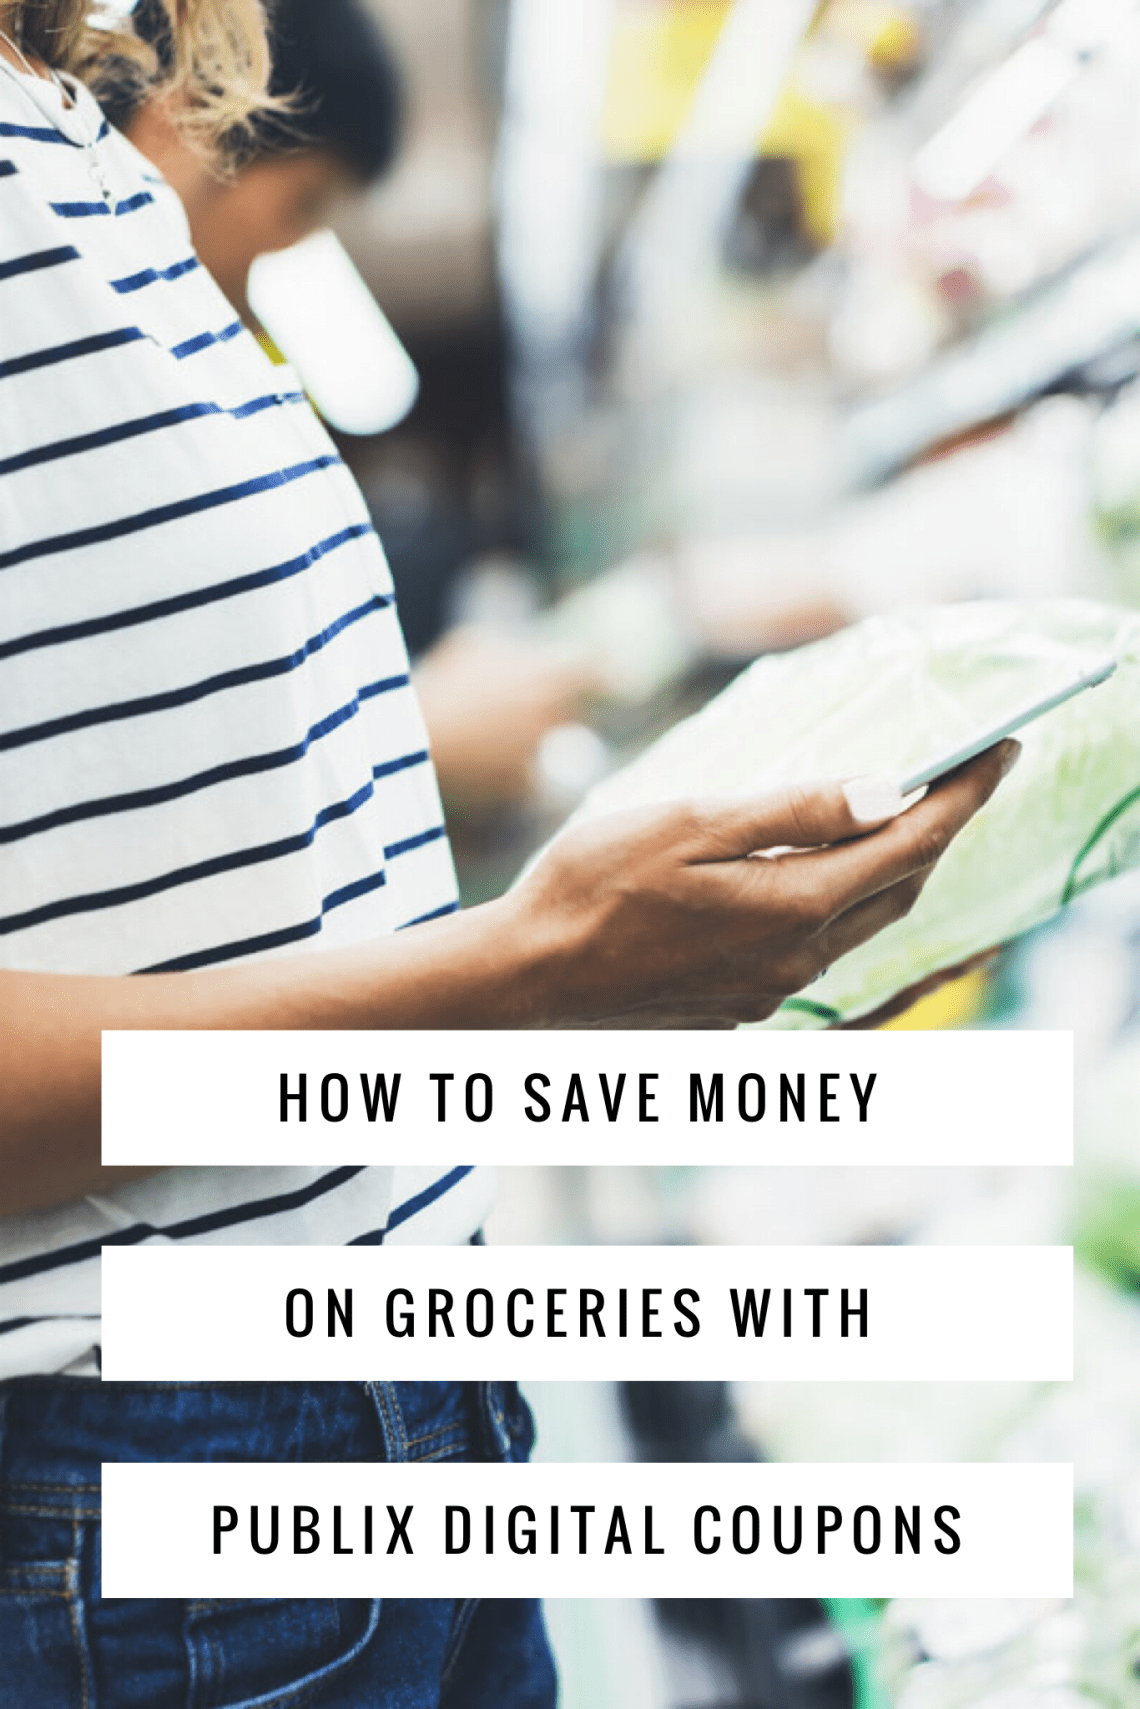 Publix Digital Coupons Save Money on Groceries via Misty Nelson frostedBlog @frostedevents Couponing tips